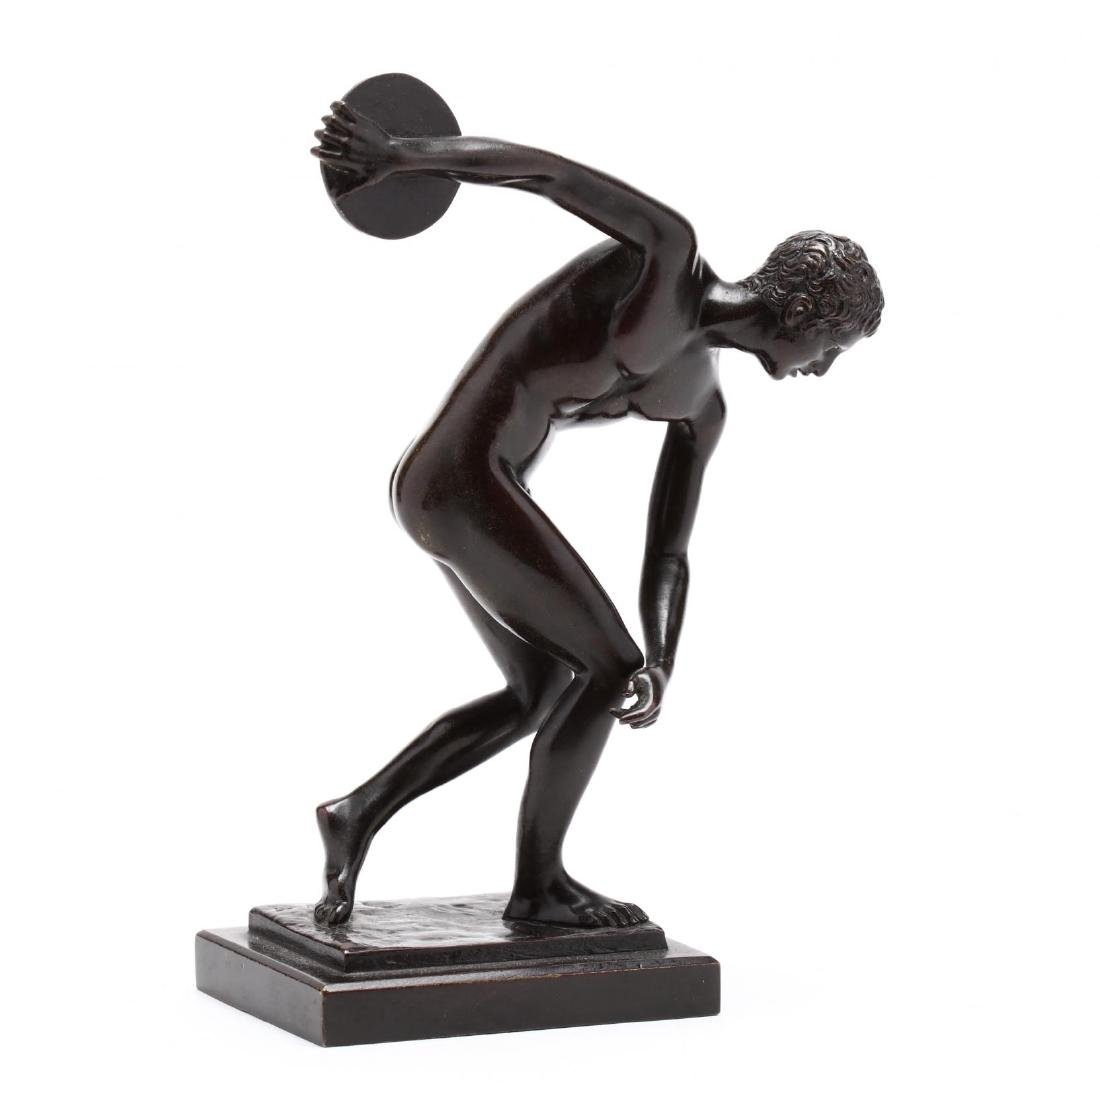 Bronze Figure of a Discus Thrower